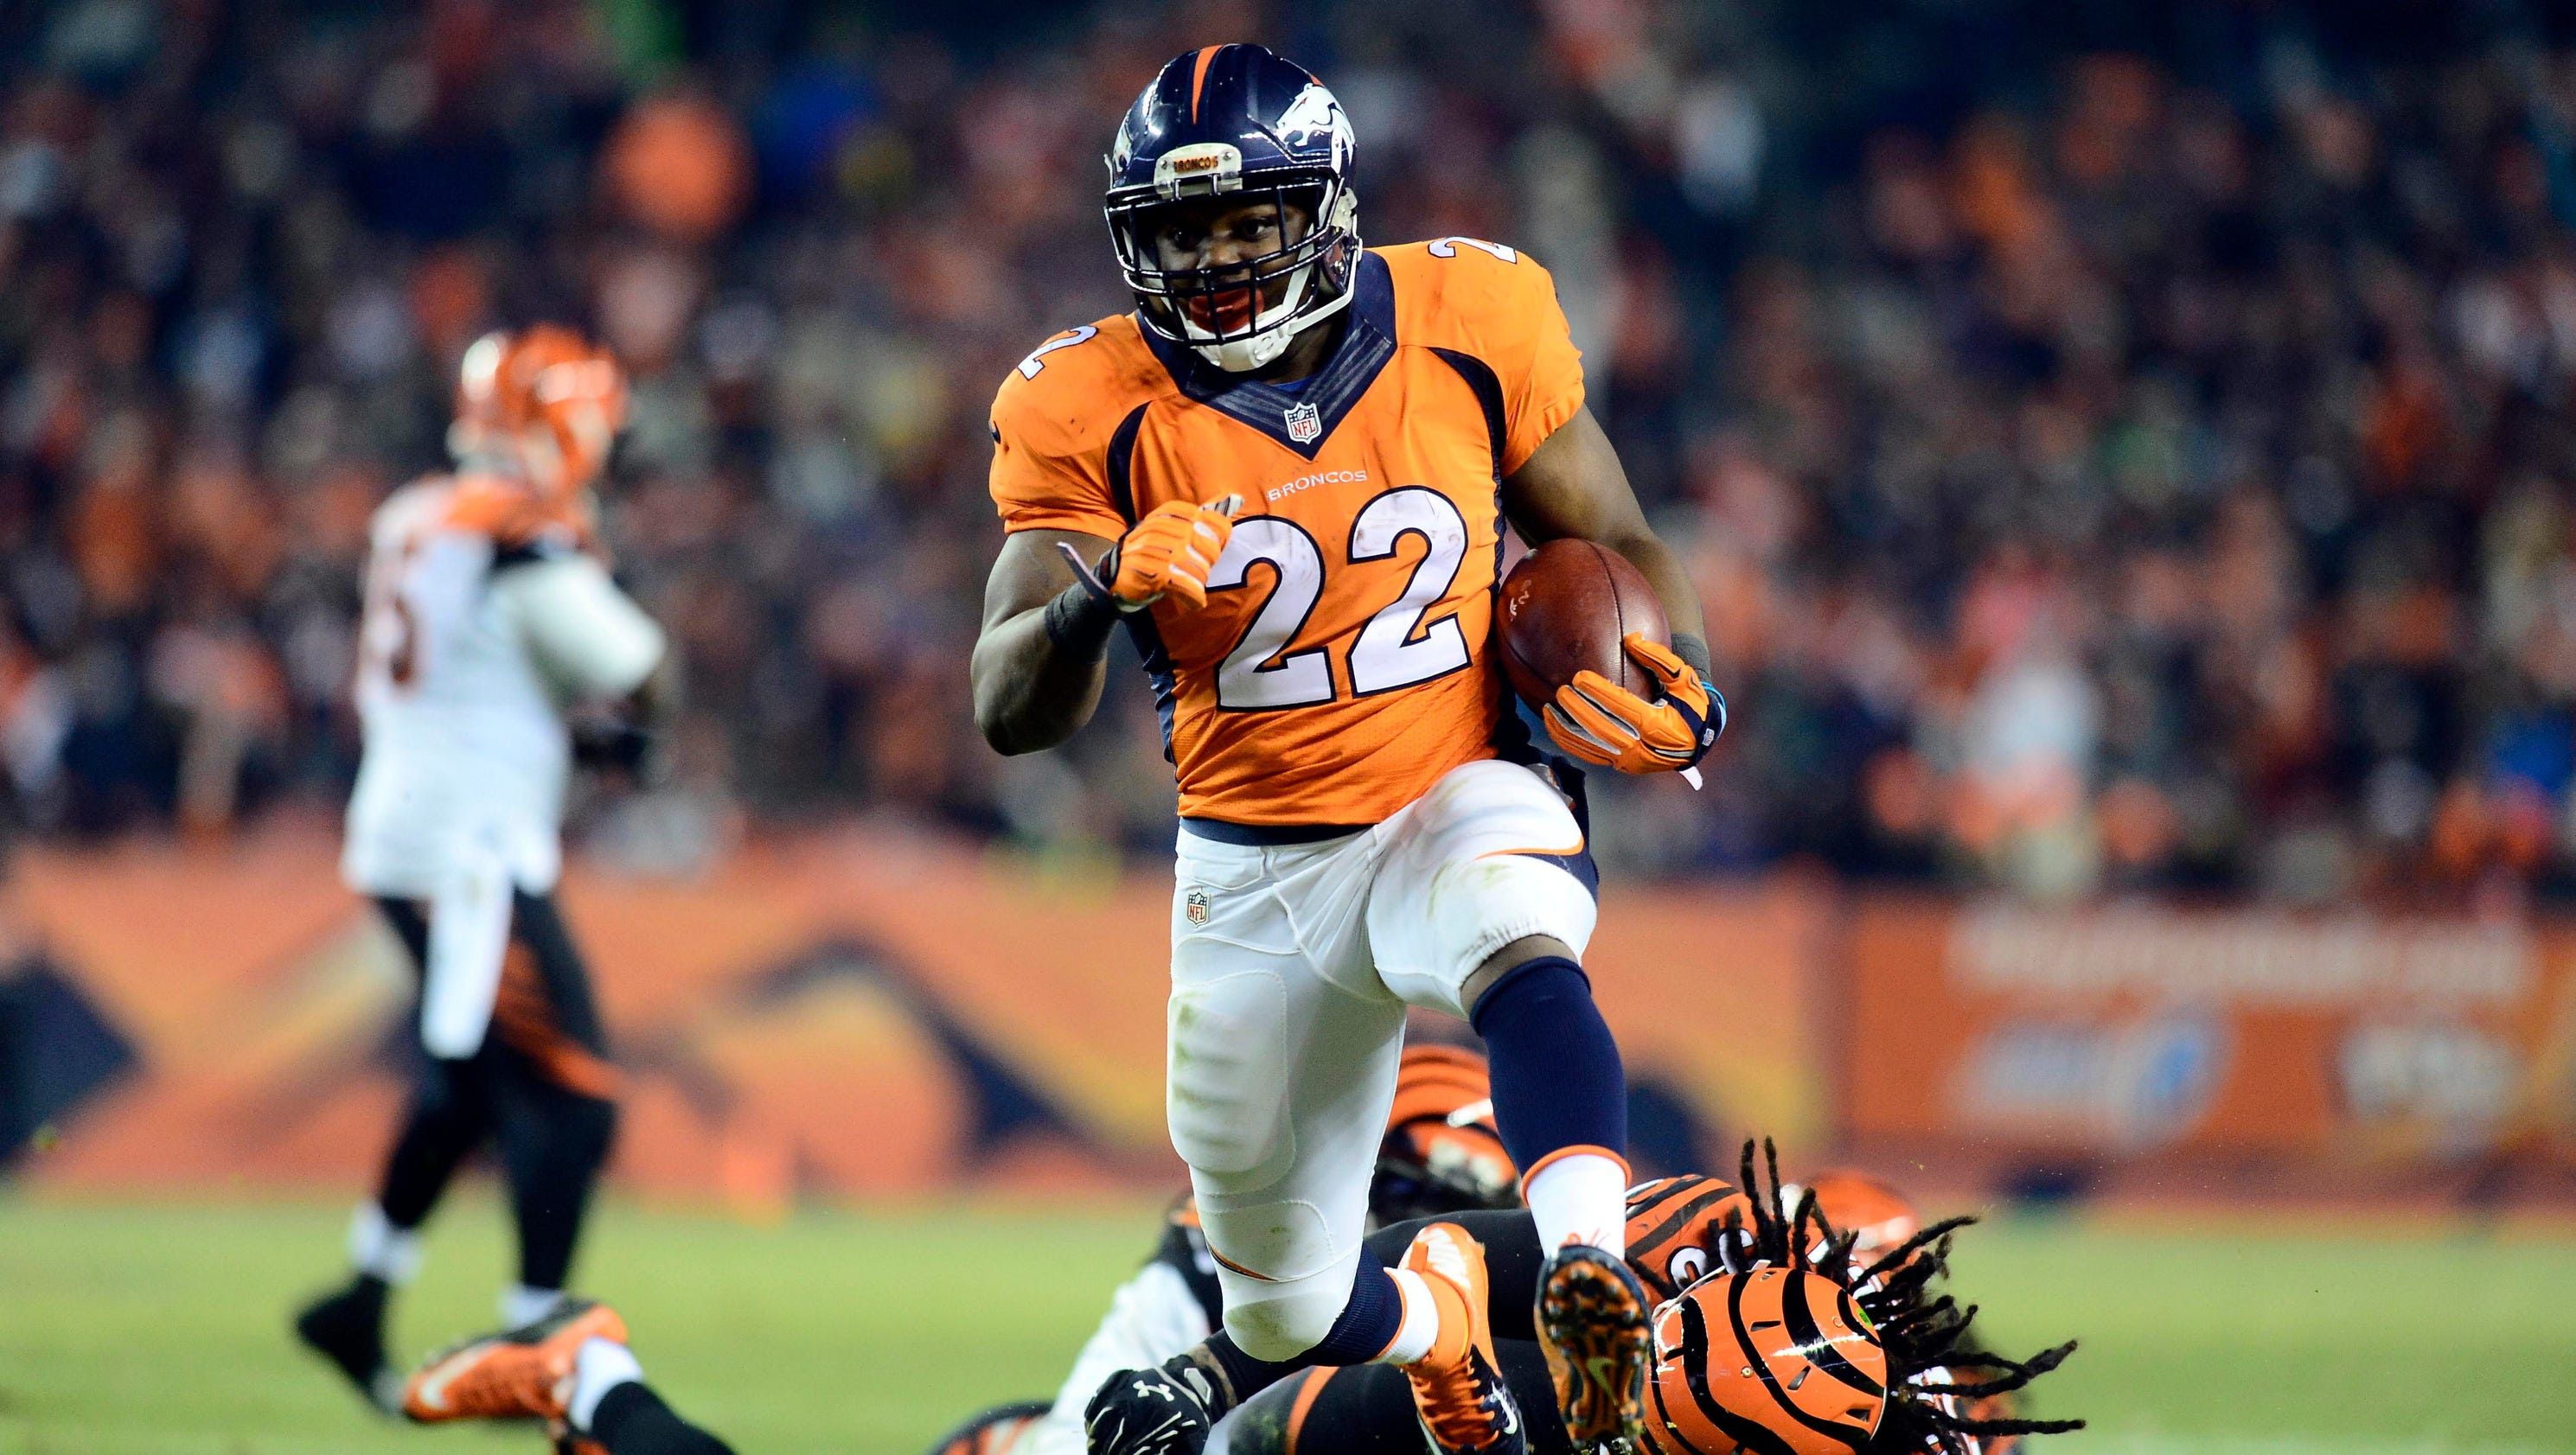 Super Bowl 50 matchups: Broncos RB C.J. Anderson vs. Panthers front seven